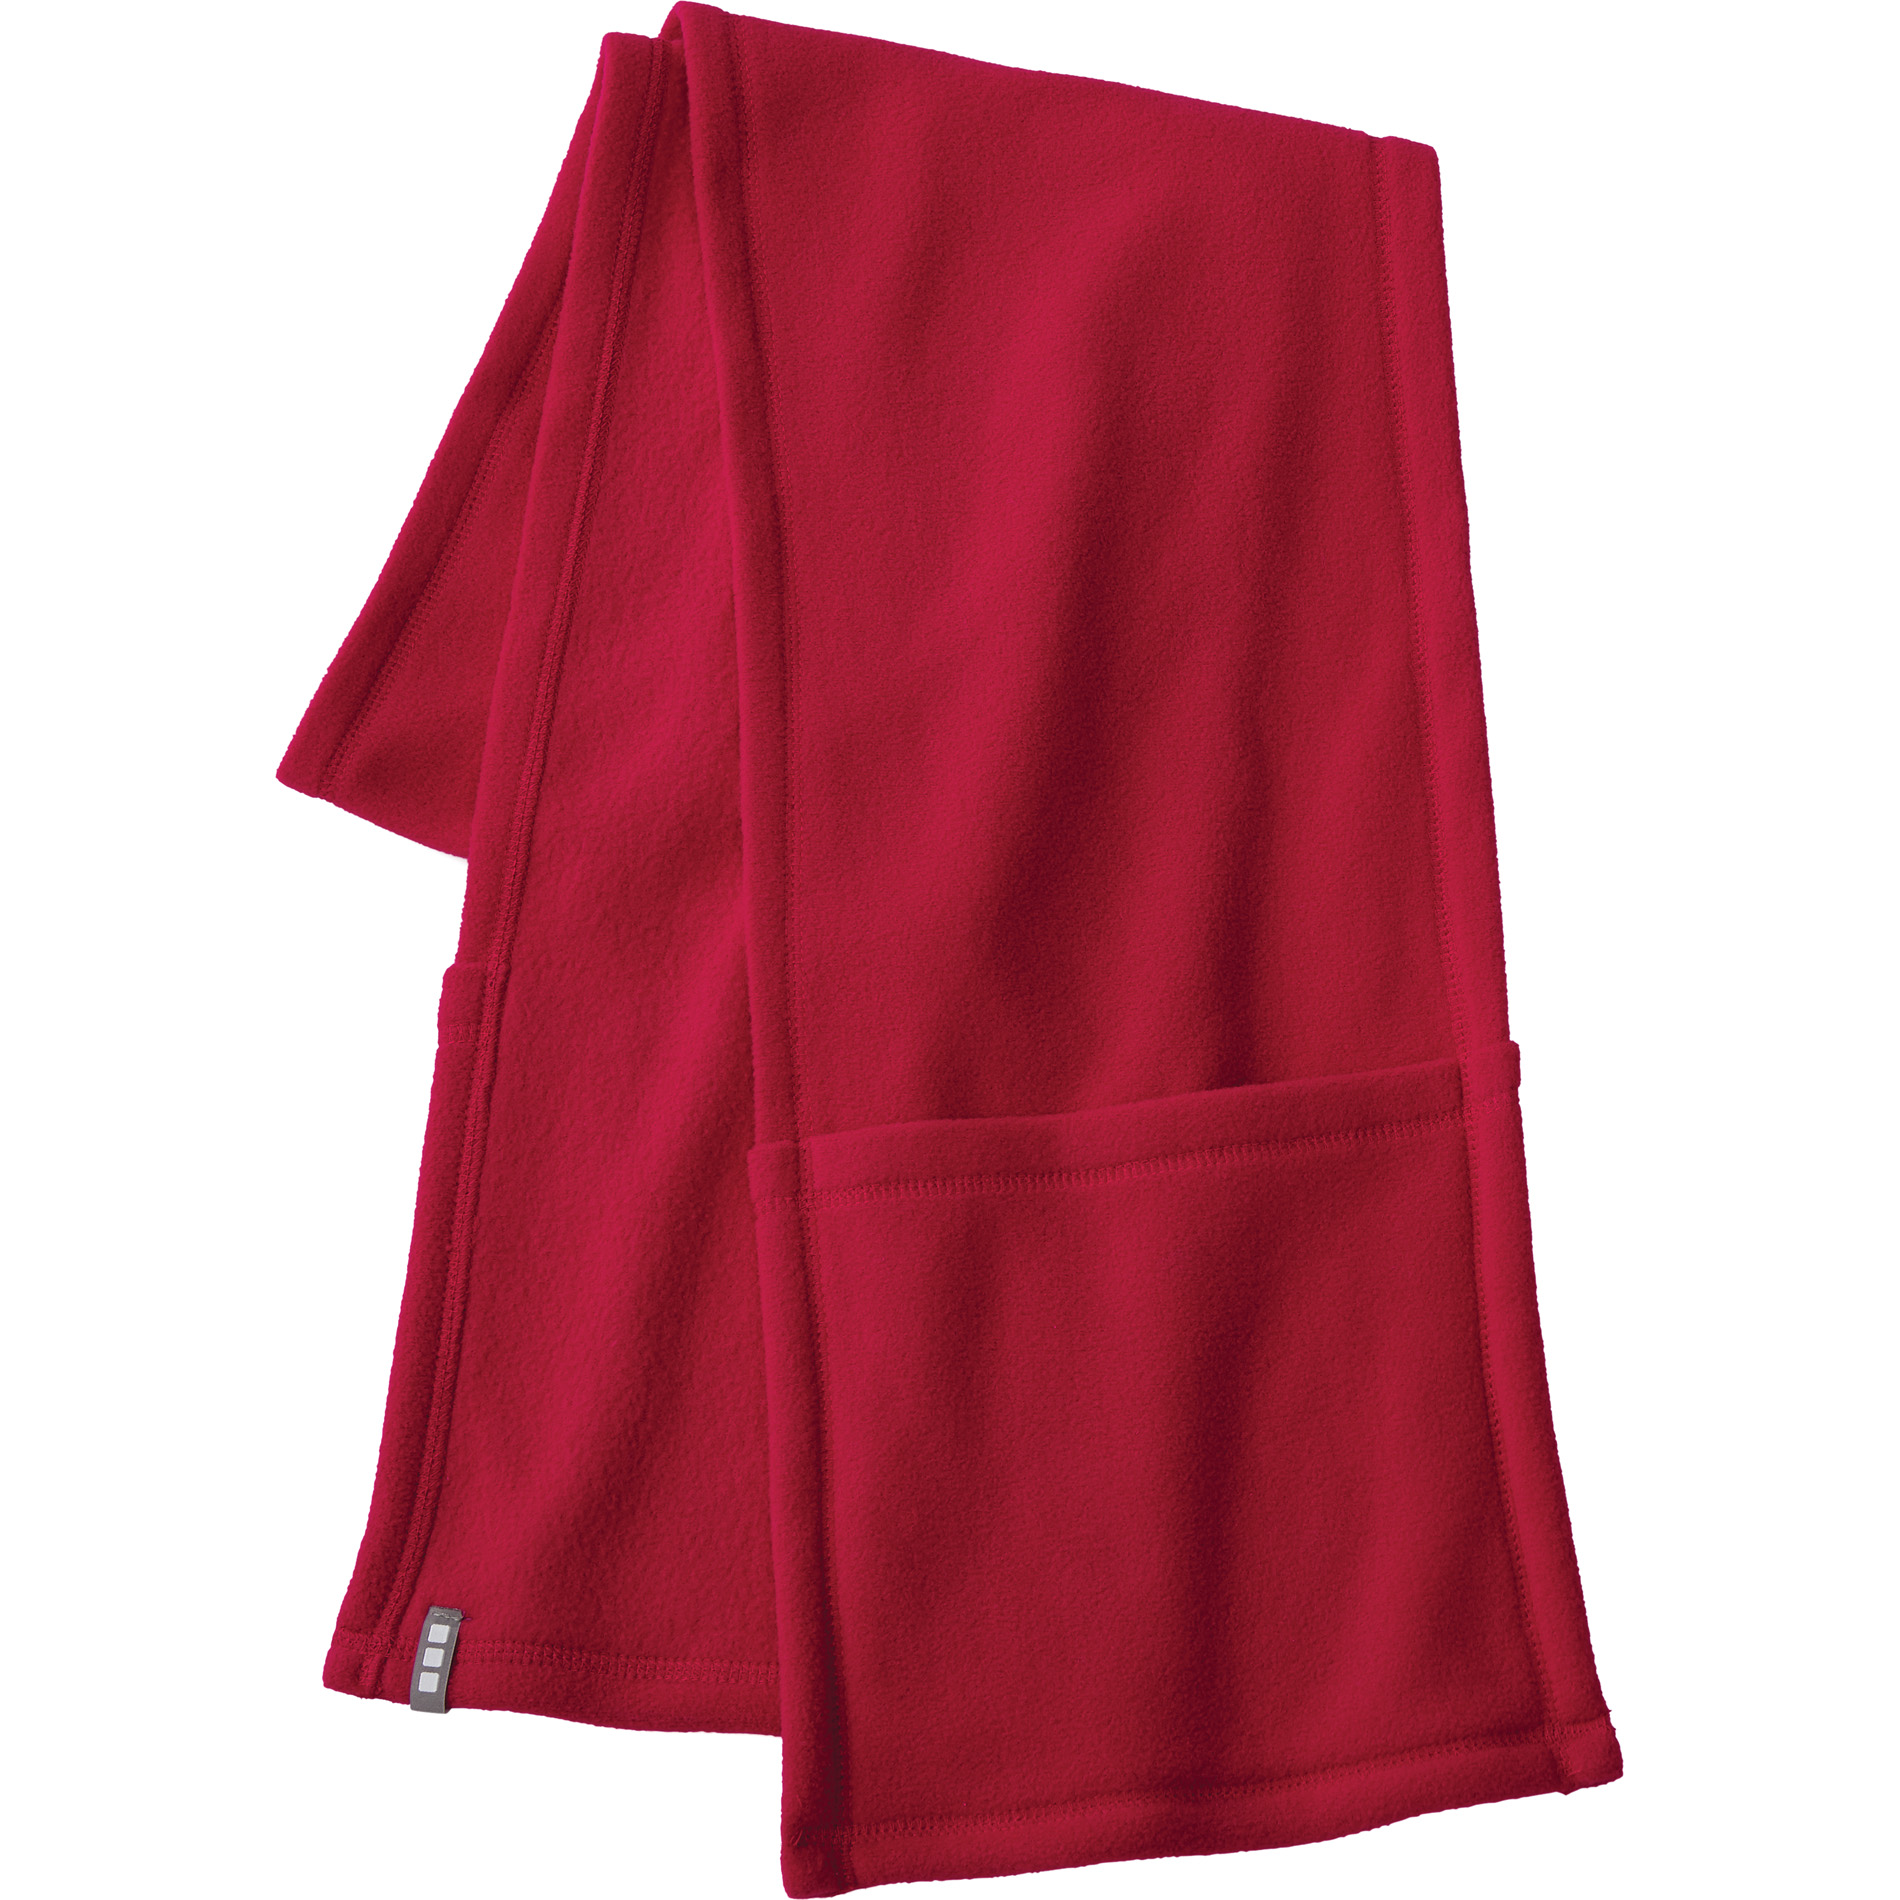 Elevate TM45107 - Evoke Microfleece Scarf